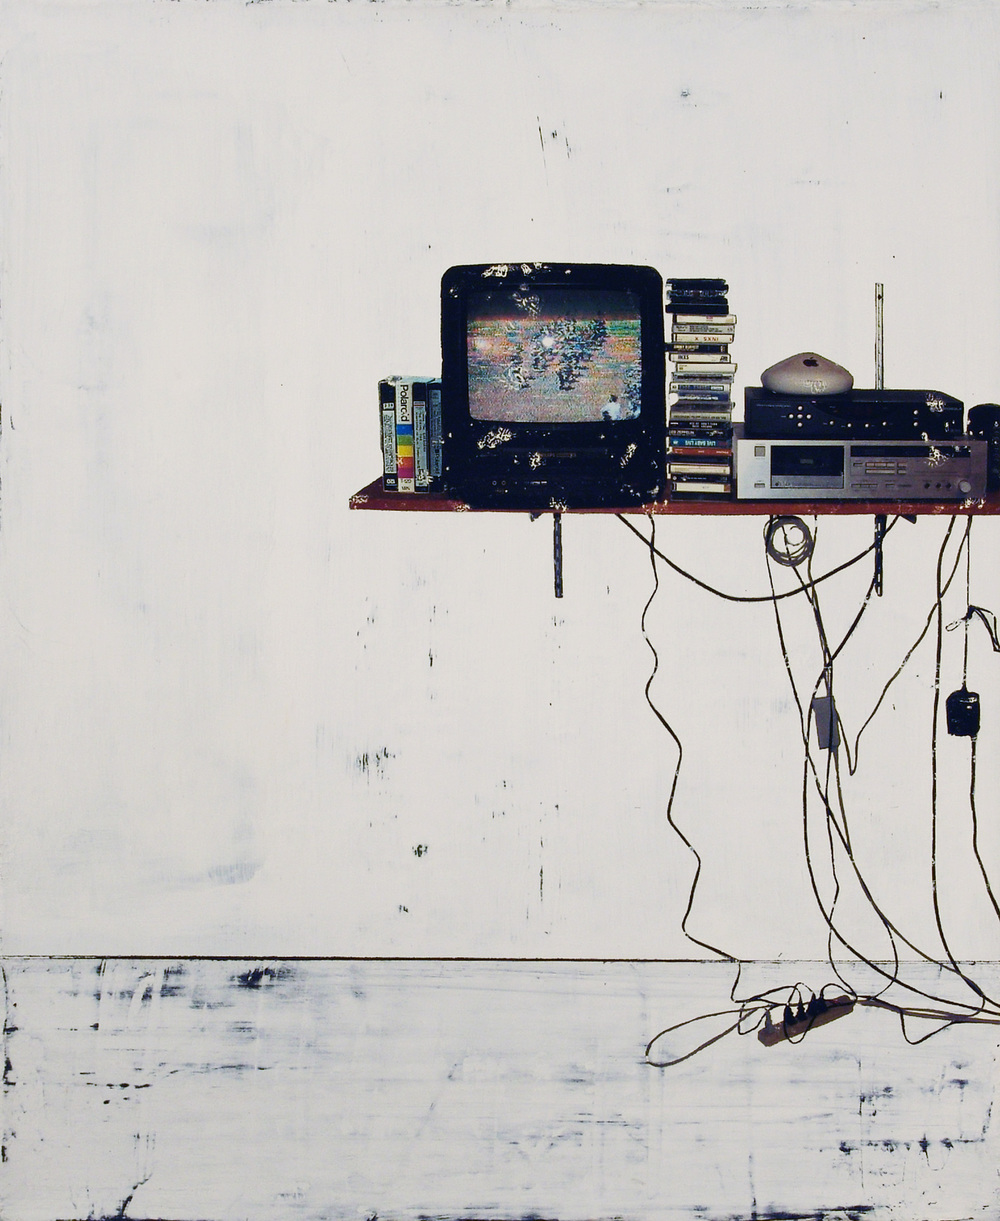 TV Room (May Day), pigment transfer, acrylic on canvas, 26 x 22 inches, hbt09-02, 2009, Private Collection